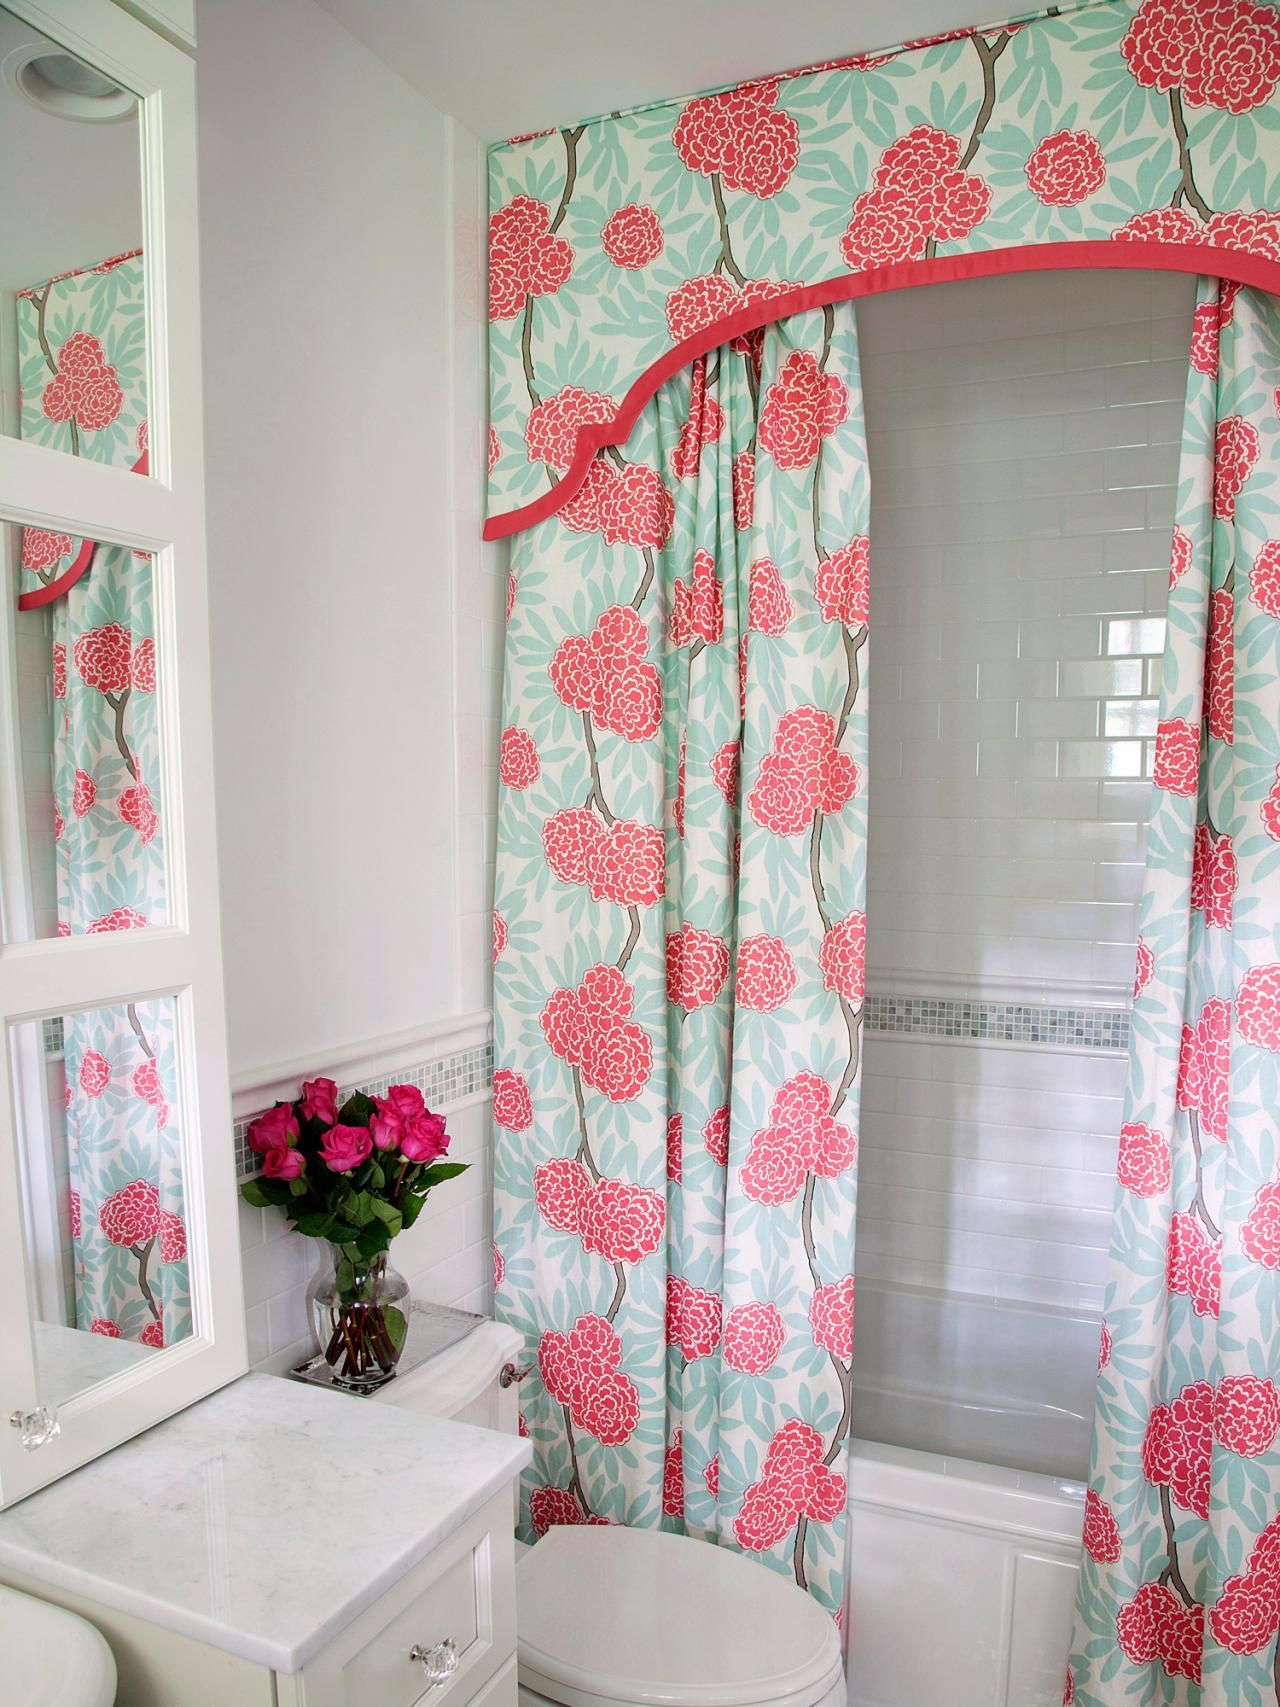 Chic Cherry Blossoms Bathroom Set With Double Shower Curtain For Girls The Most Recommended Girly